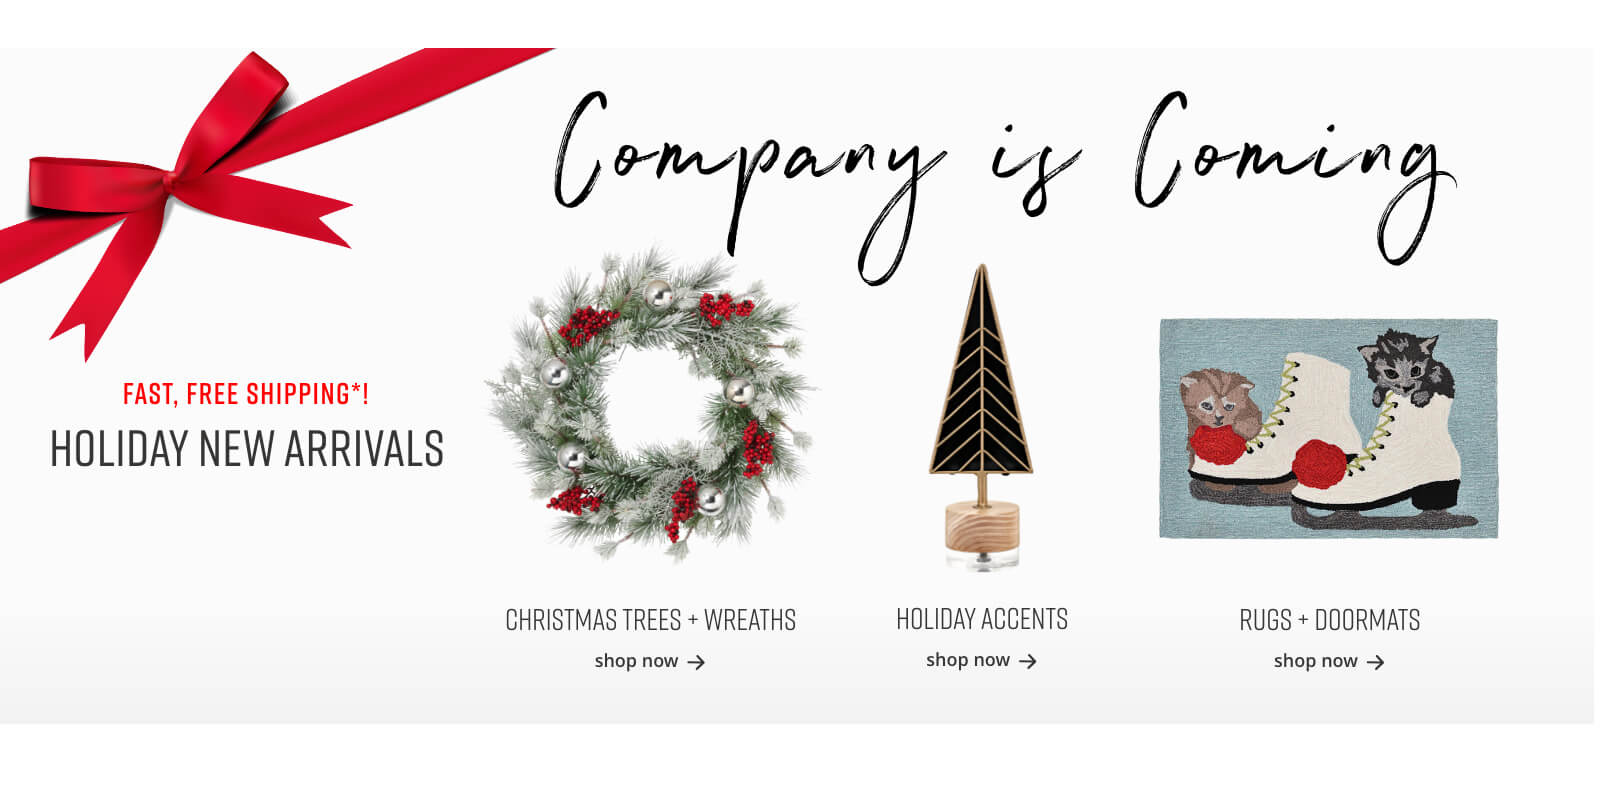 Christmas Trees and Wreaths, Holiday Accents, Rugs and Doormats